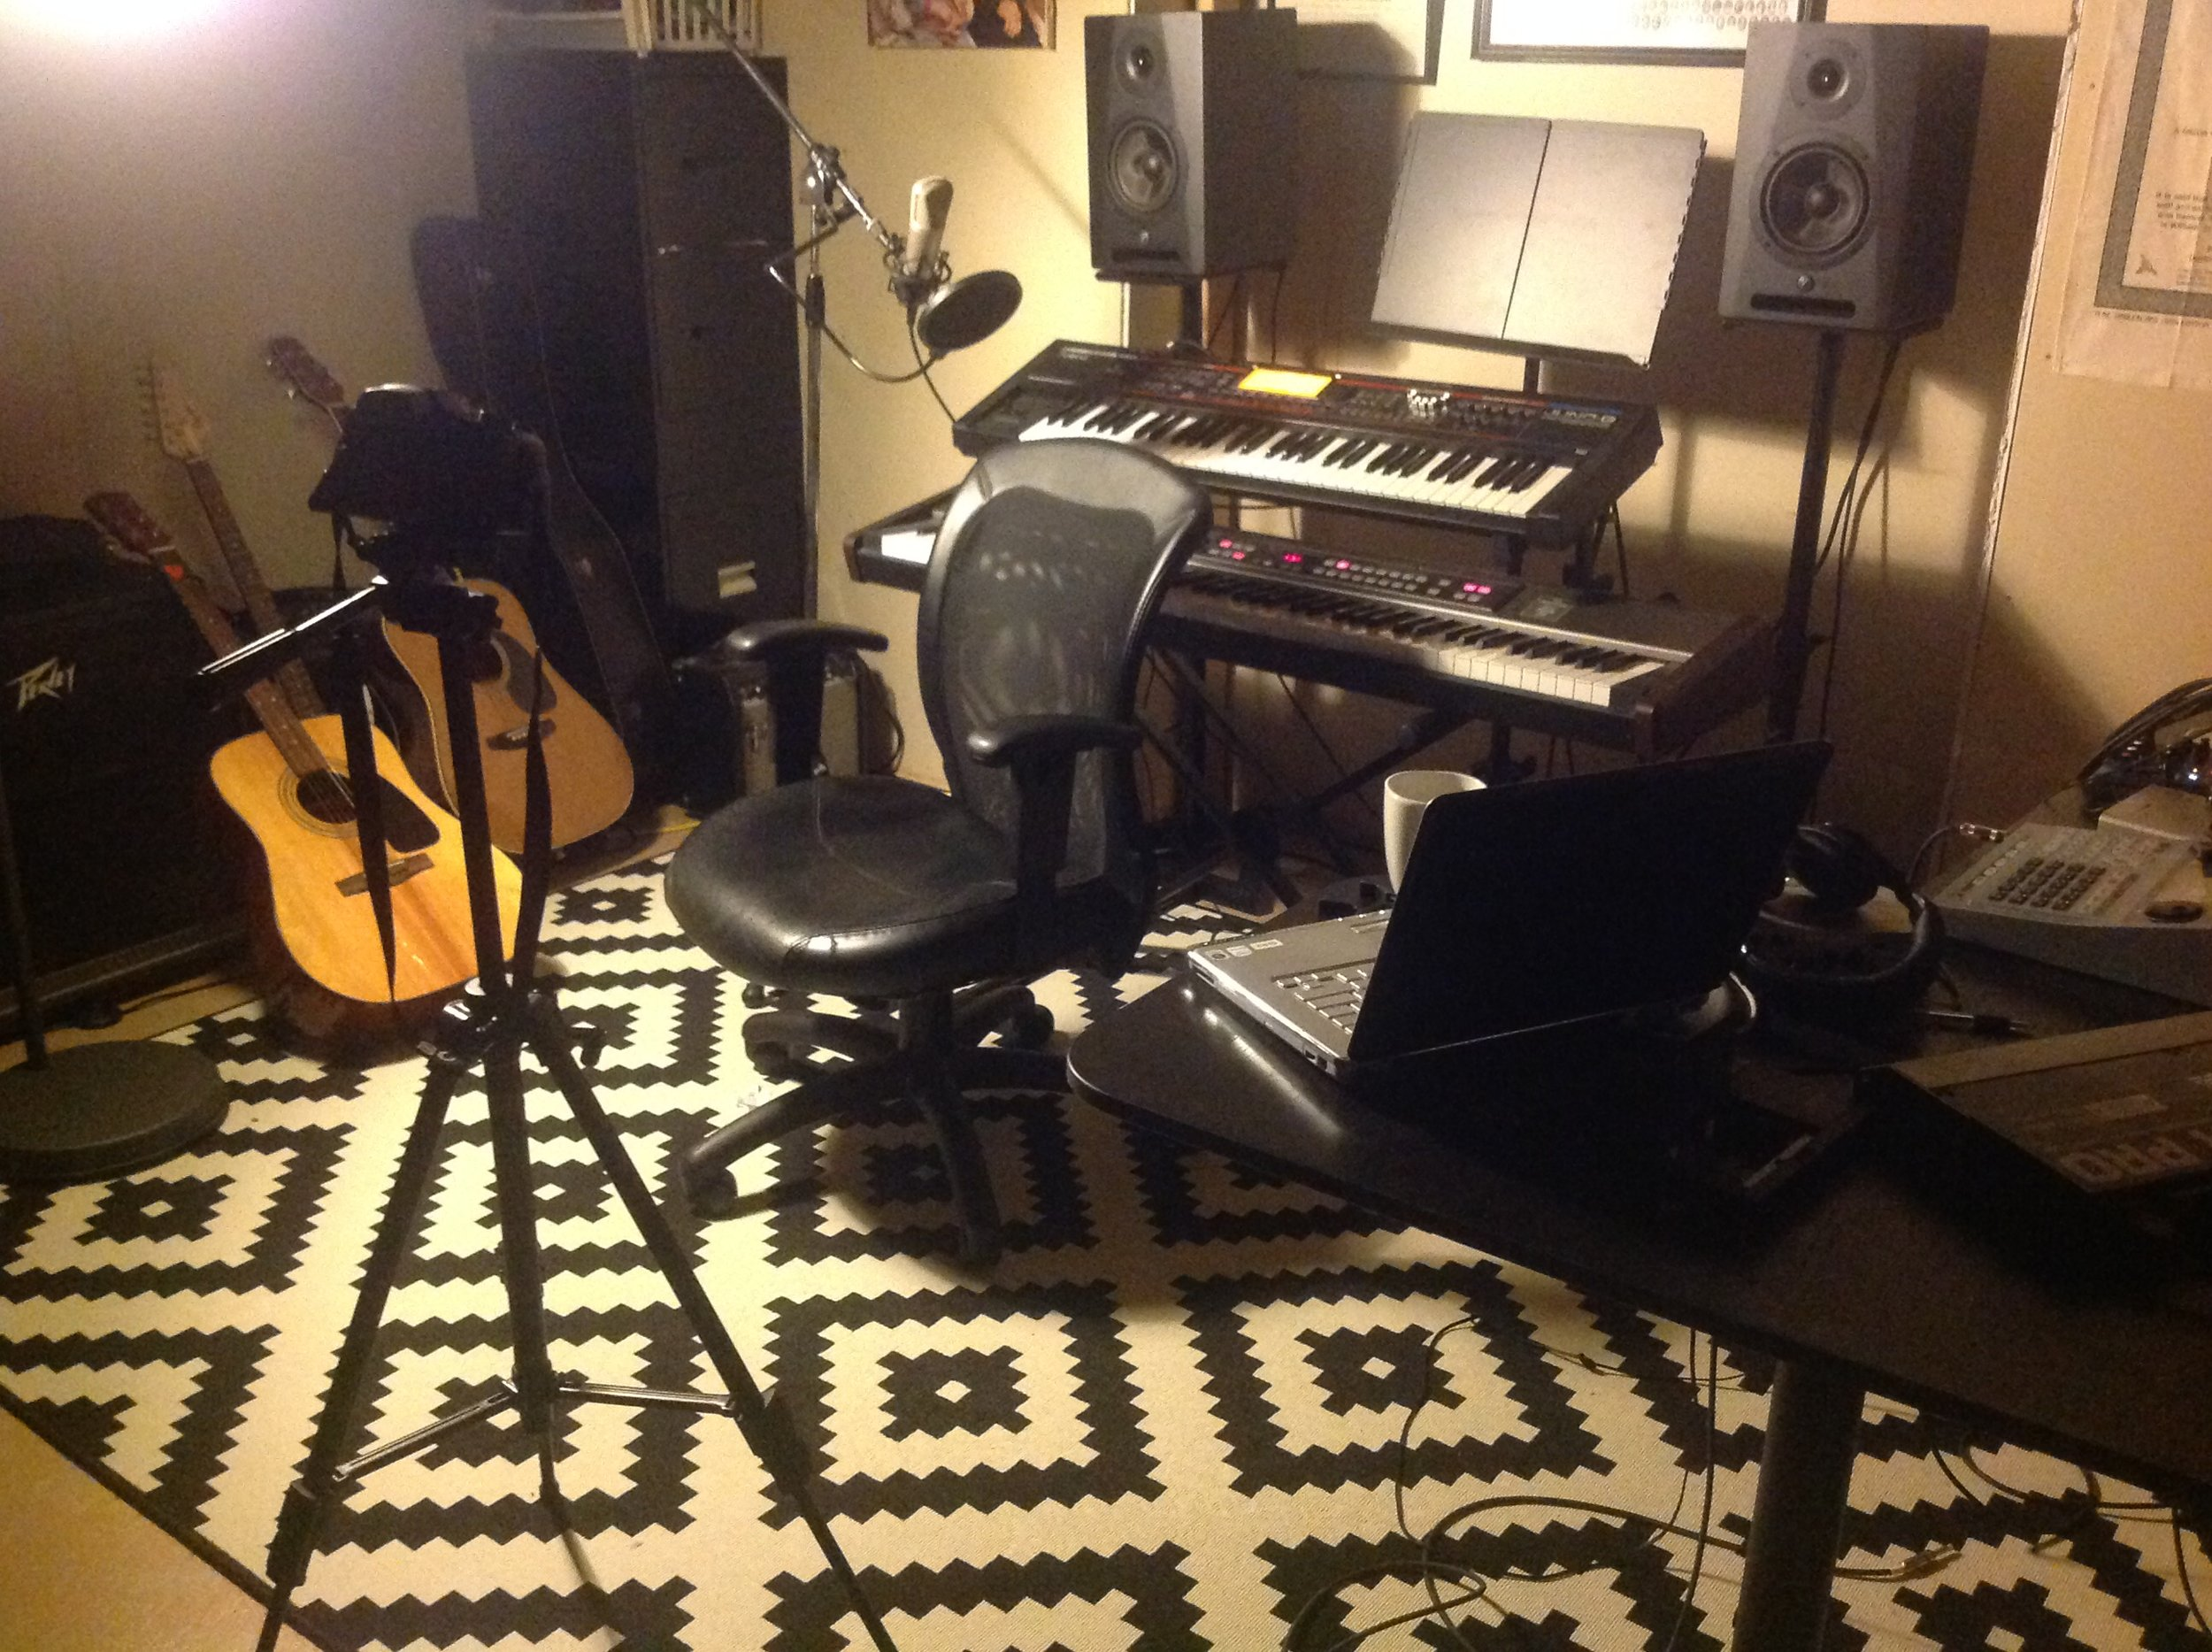 Geoff's music studio at home.